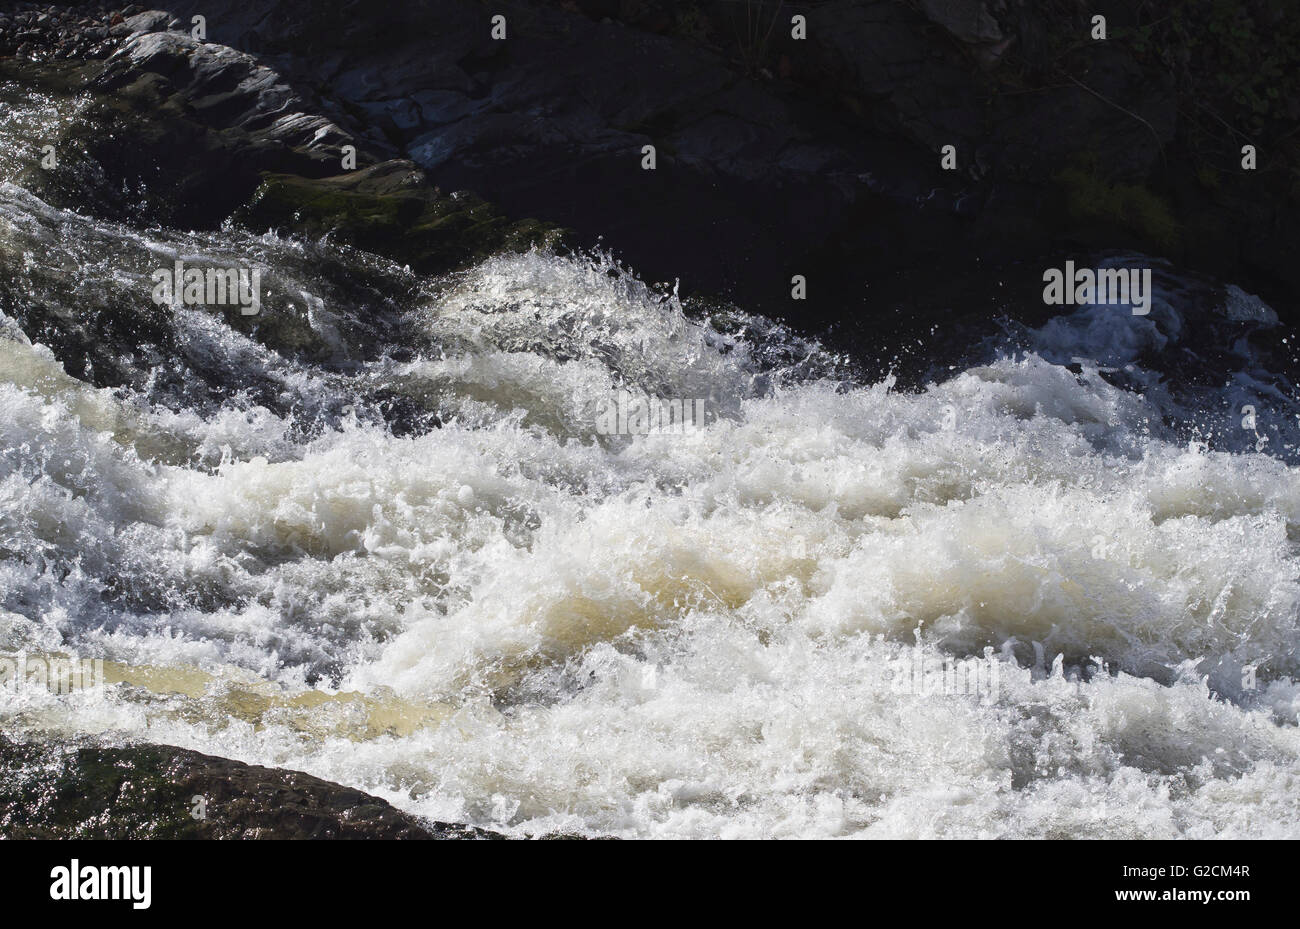 Rapids with rushing clear water in springtime sunlight, Alna river in Oslo Norway - Stock Image